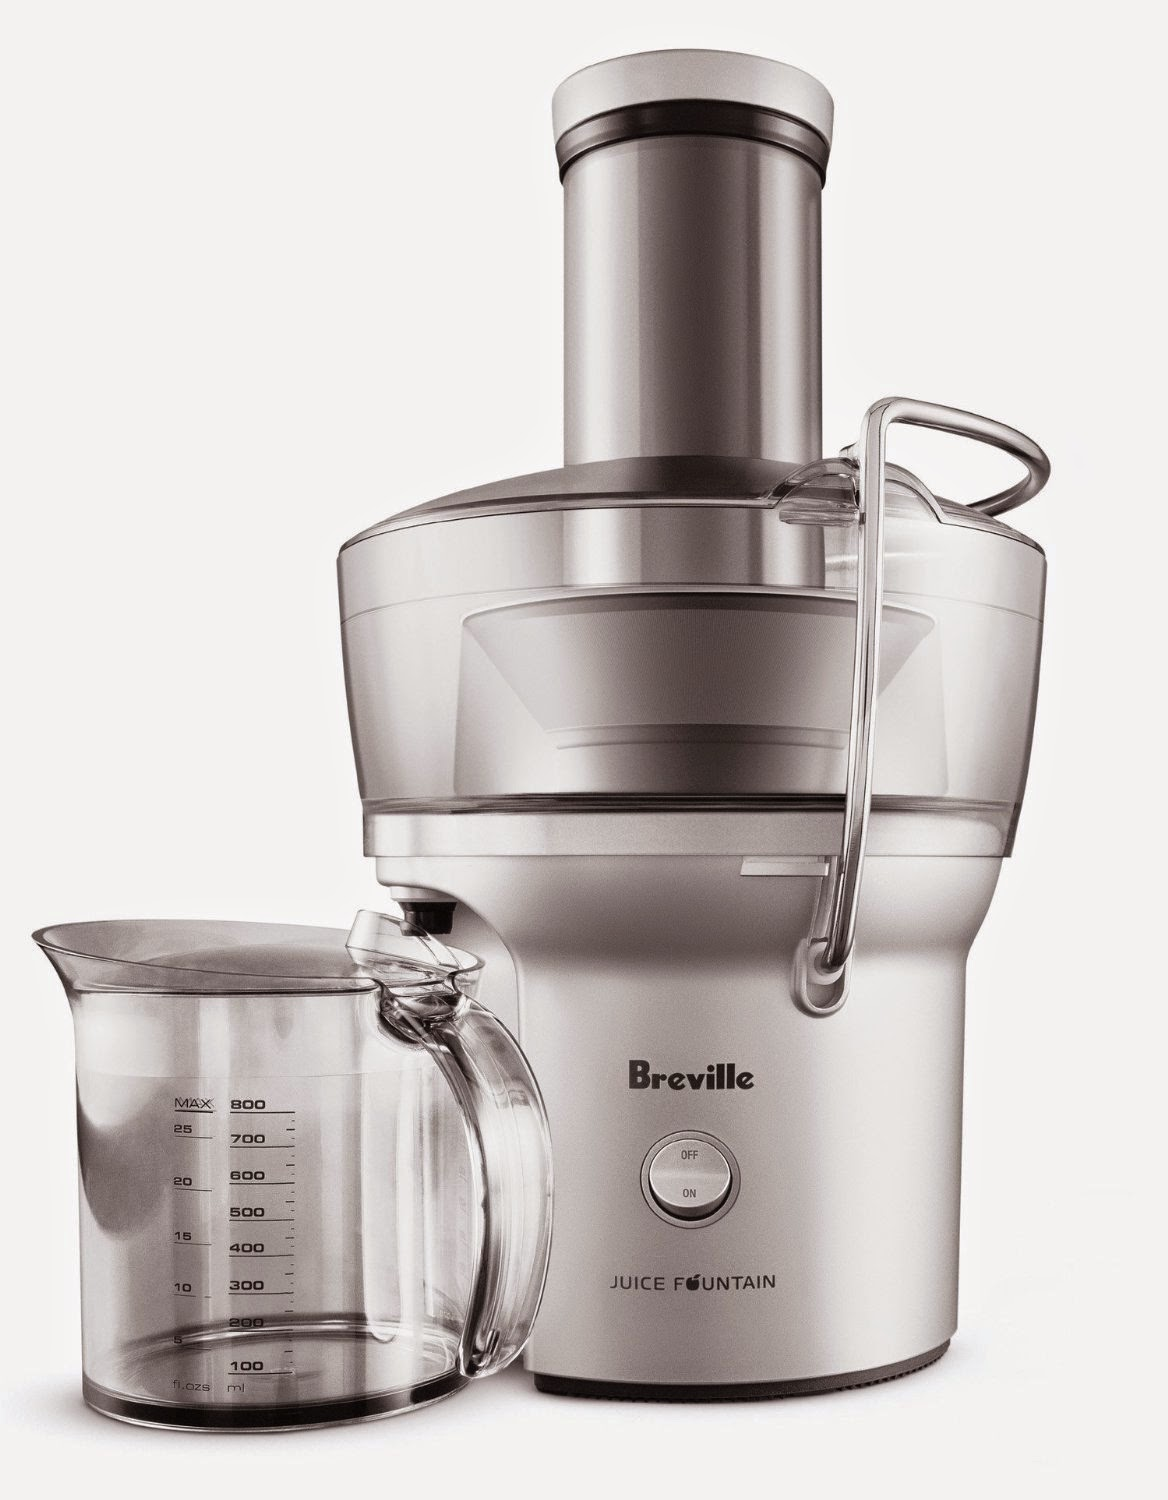 Breville BJE200XL Compact Juice Fountain, powerful and heavy-duty, takes just 5 seconds to extract an 8 ounce glass of juice